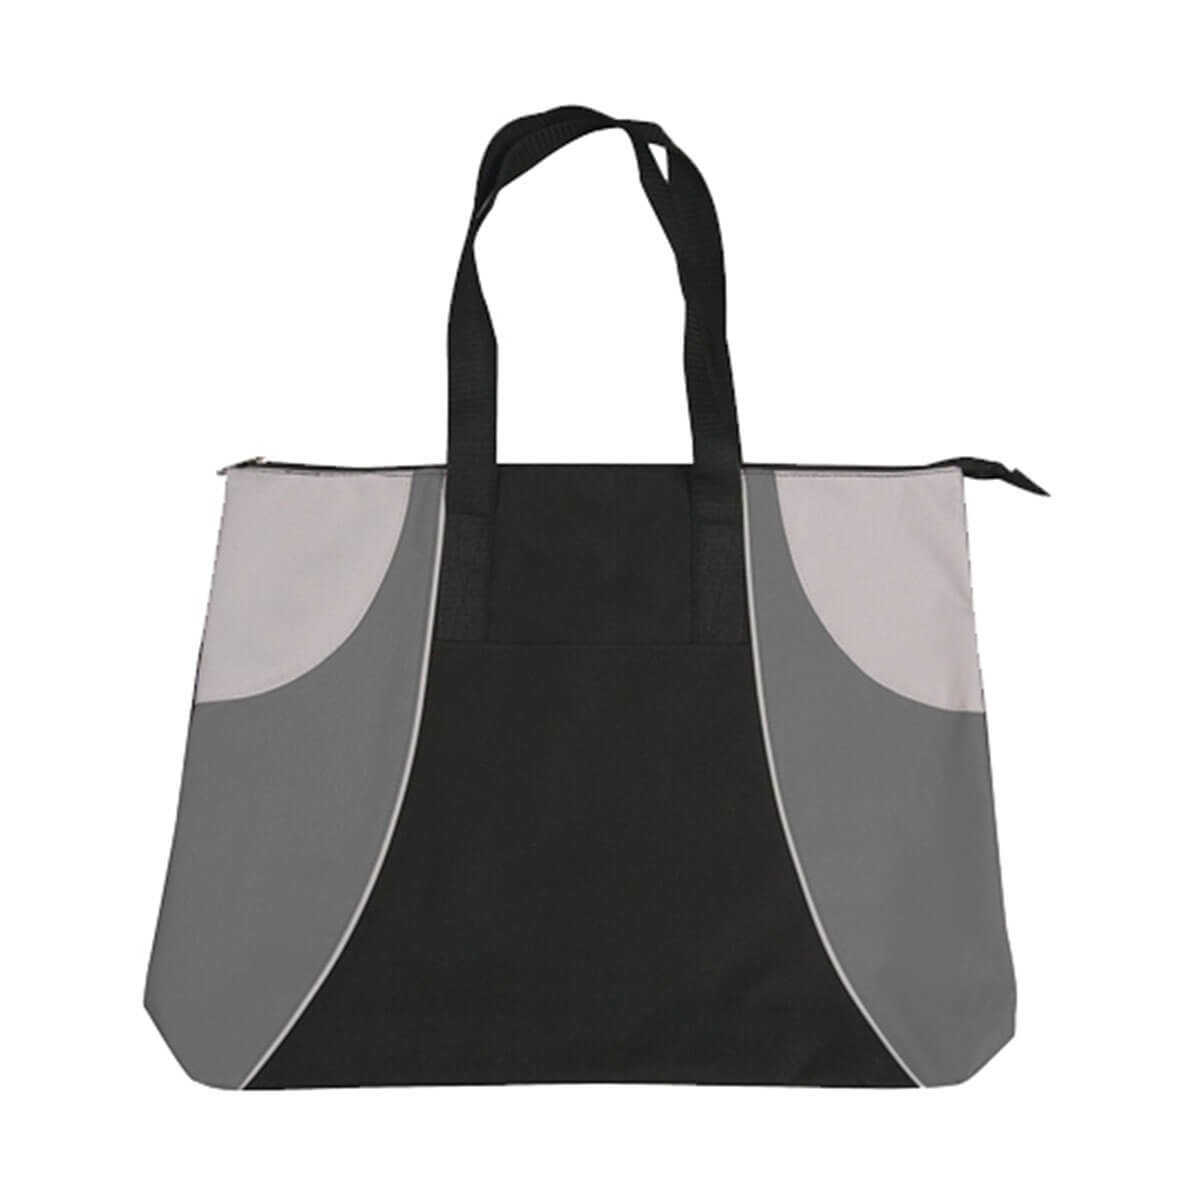 Alpine Tote Bag-Black / Grey / Silver